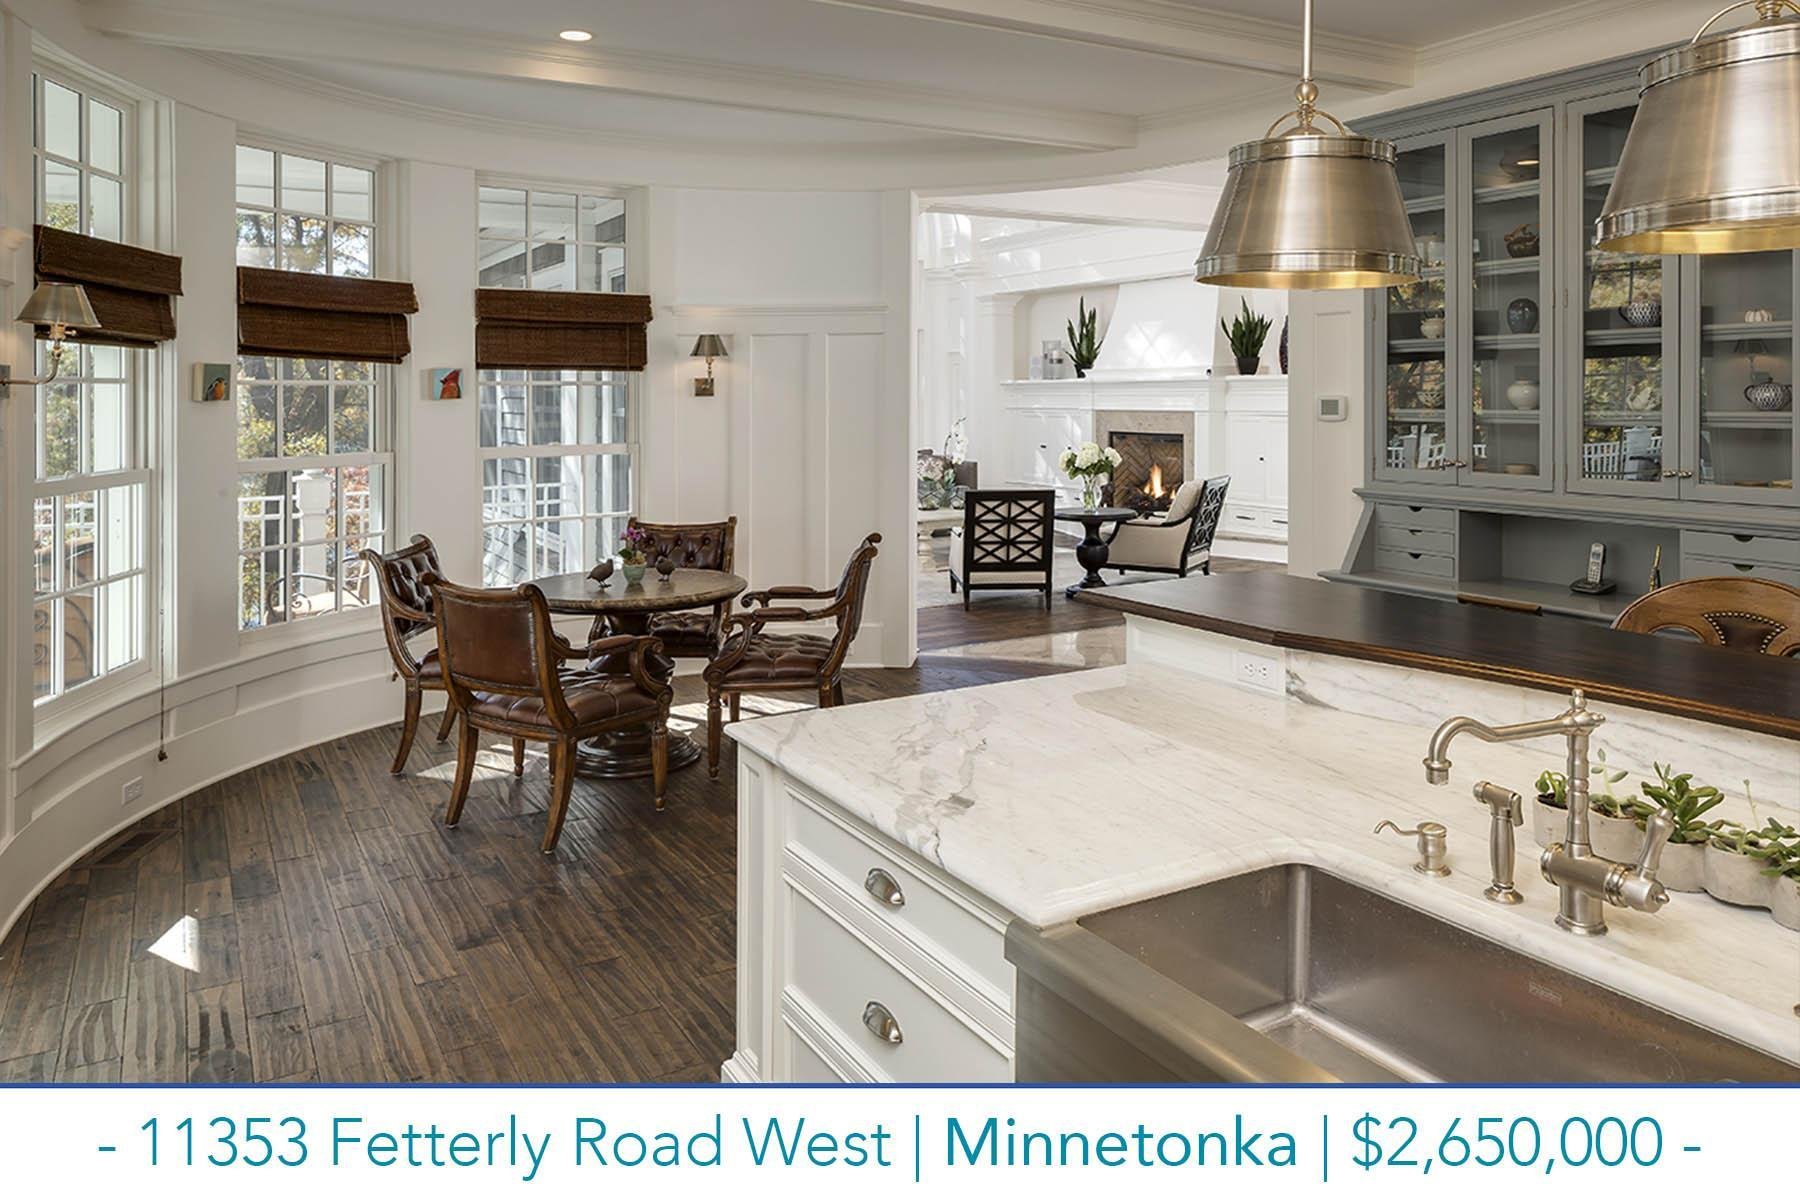 Virtual tour of a luxury home for sale in Minnetonka 11353 Fetterly Road West